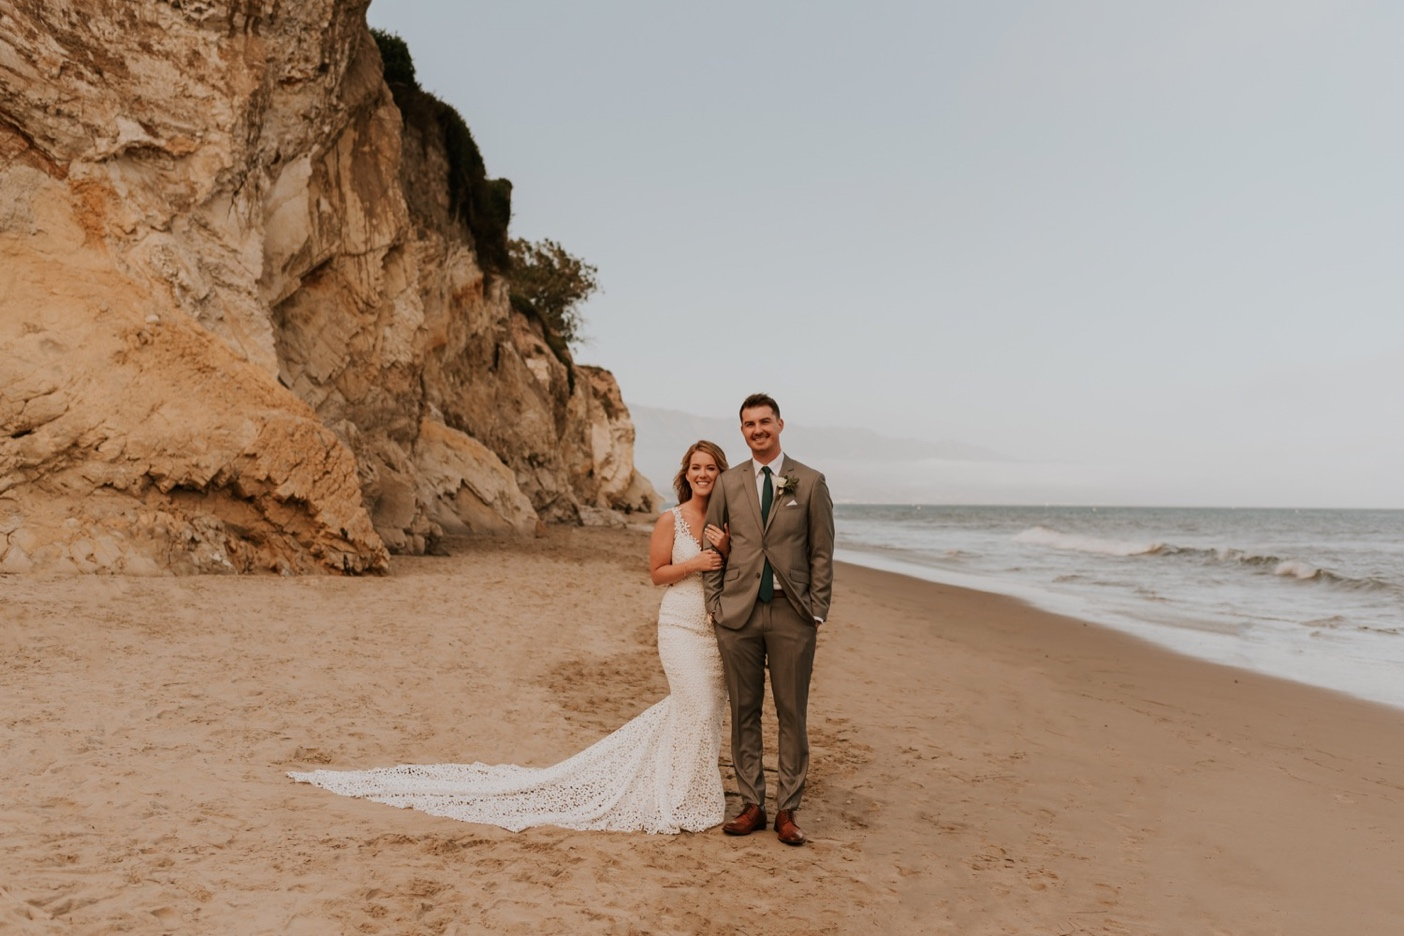 Bride and Groom Portraits on beach in Santa Barbara, California. Santa Barbara Wedding.